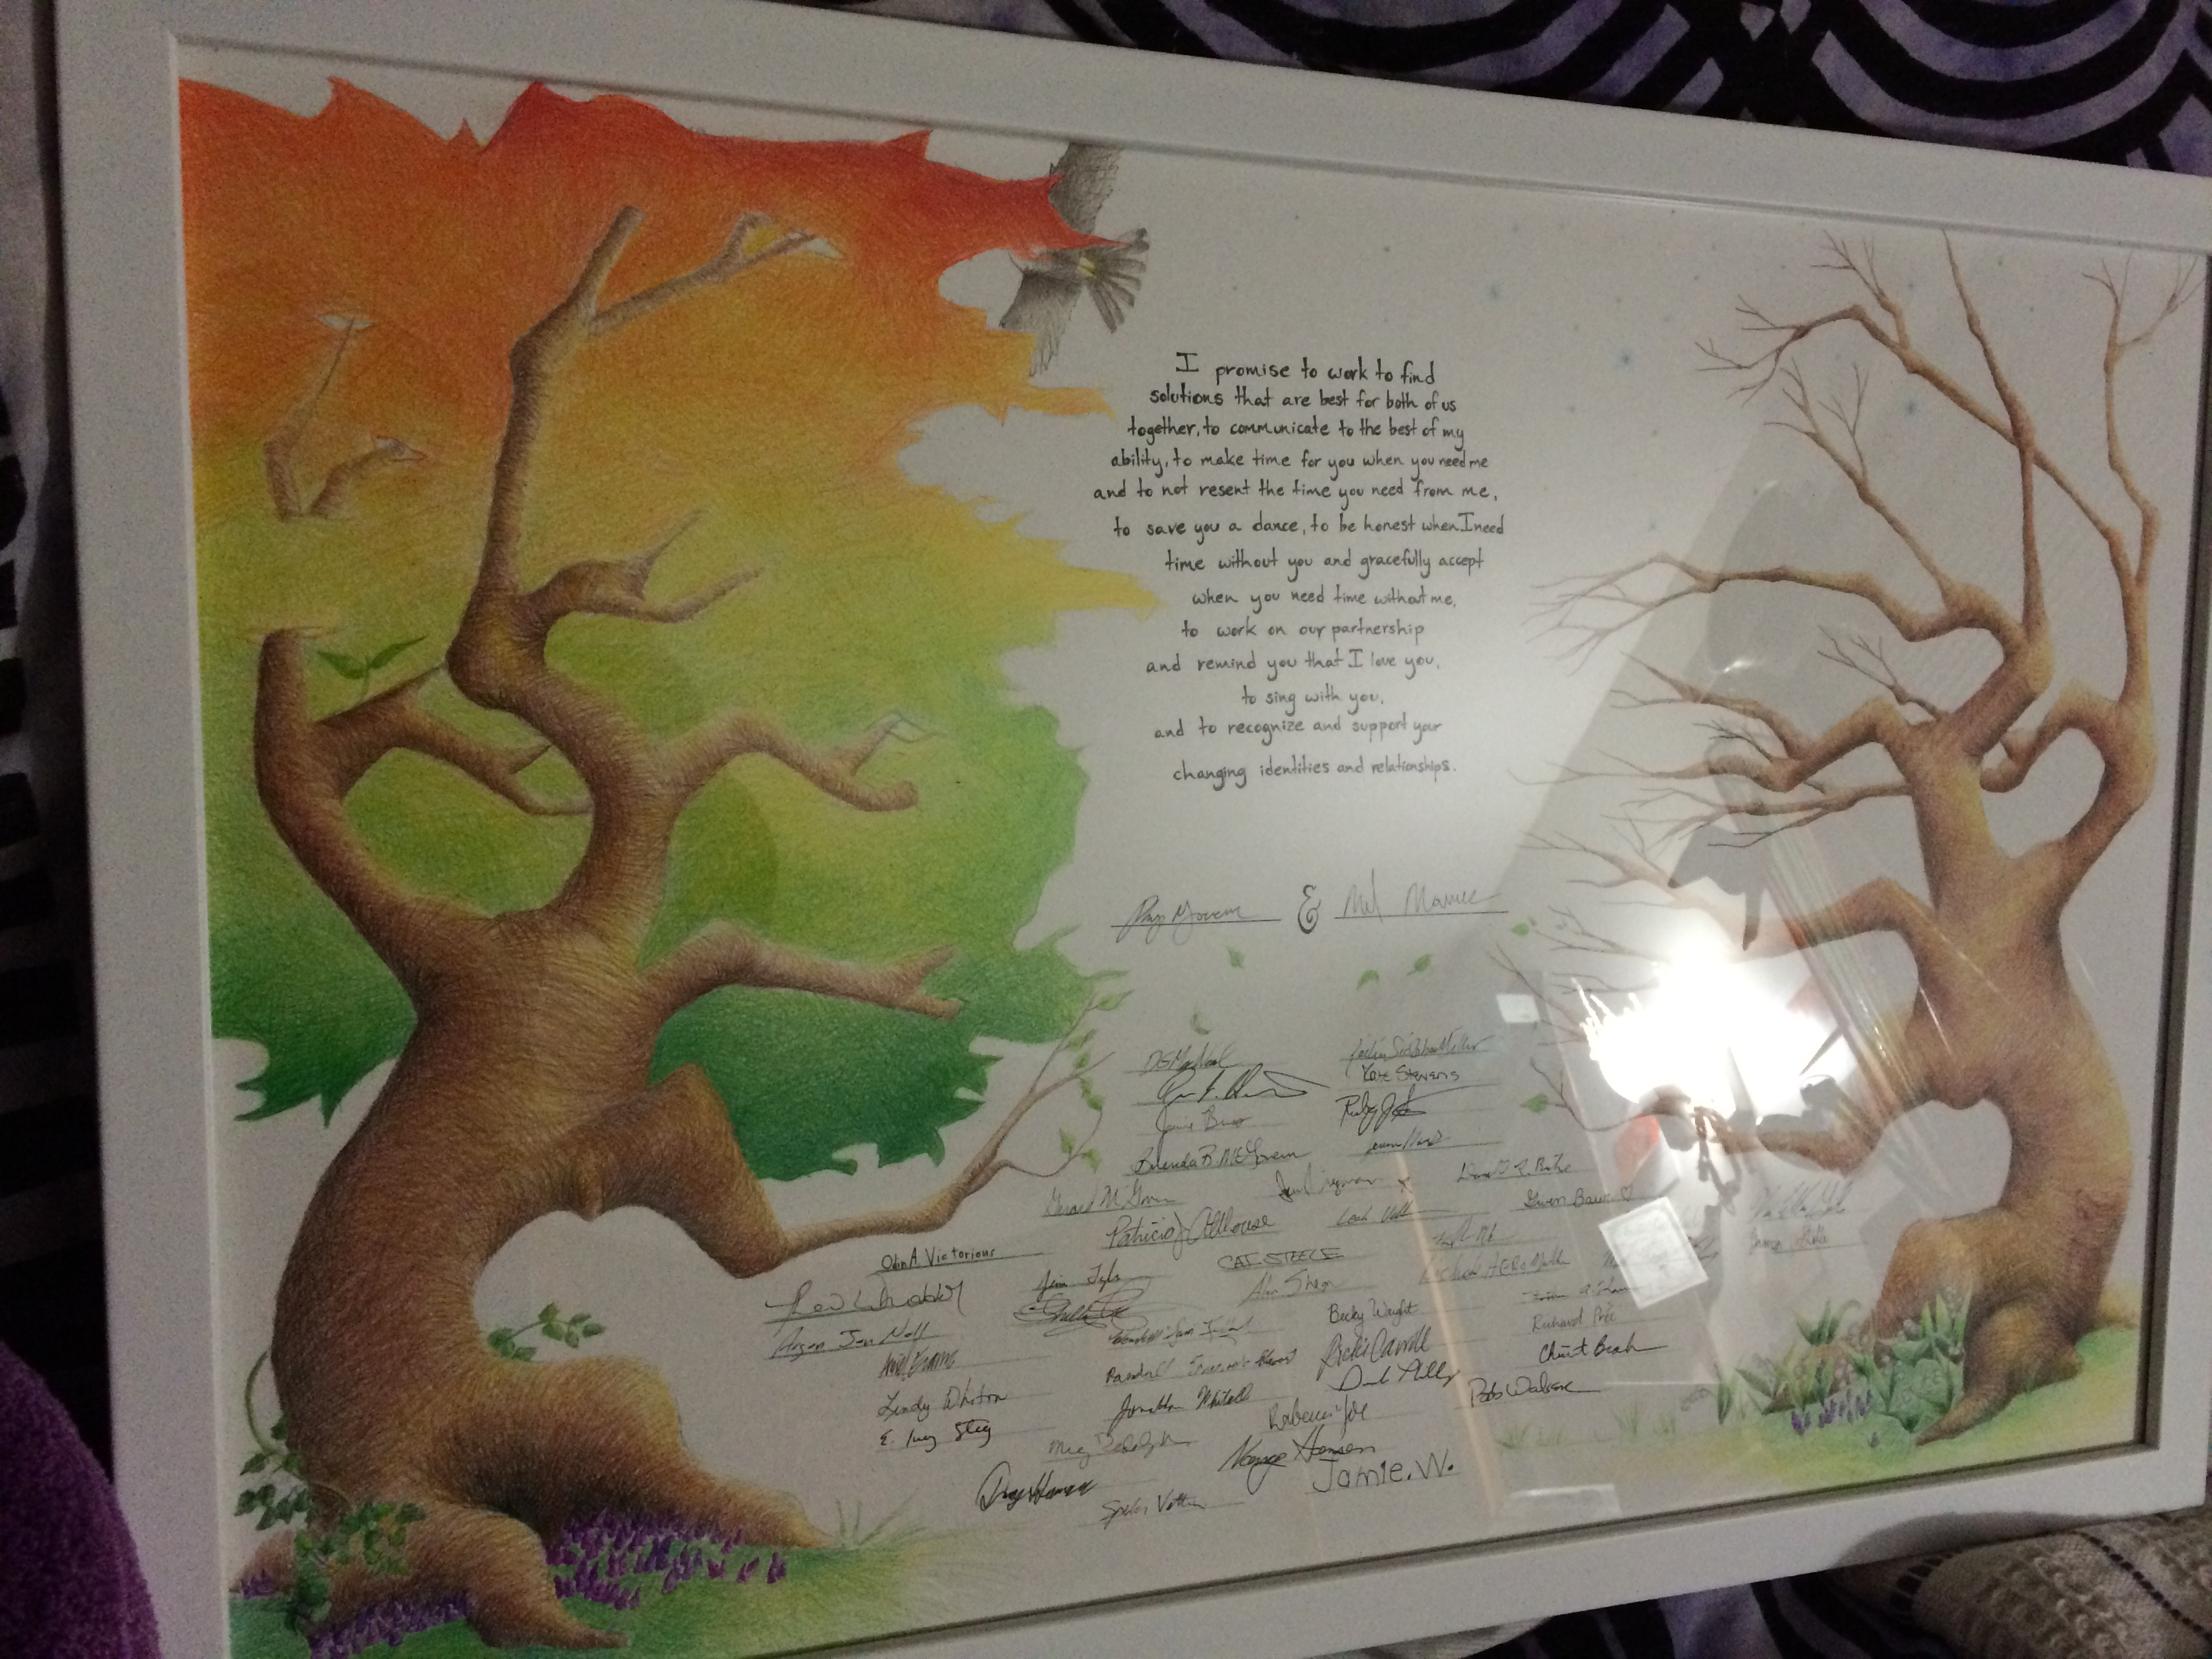 Drawing of two trees one full of leaves, the other bare with wedding vows and guest signatures in be